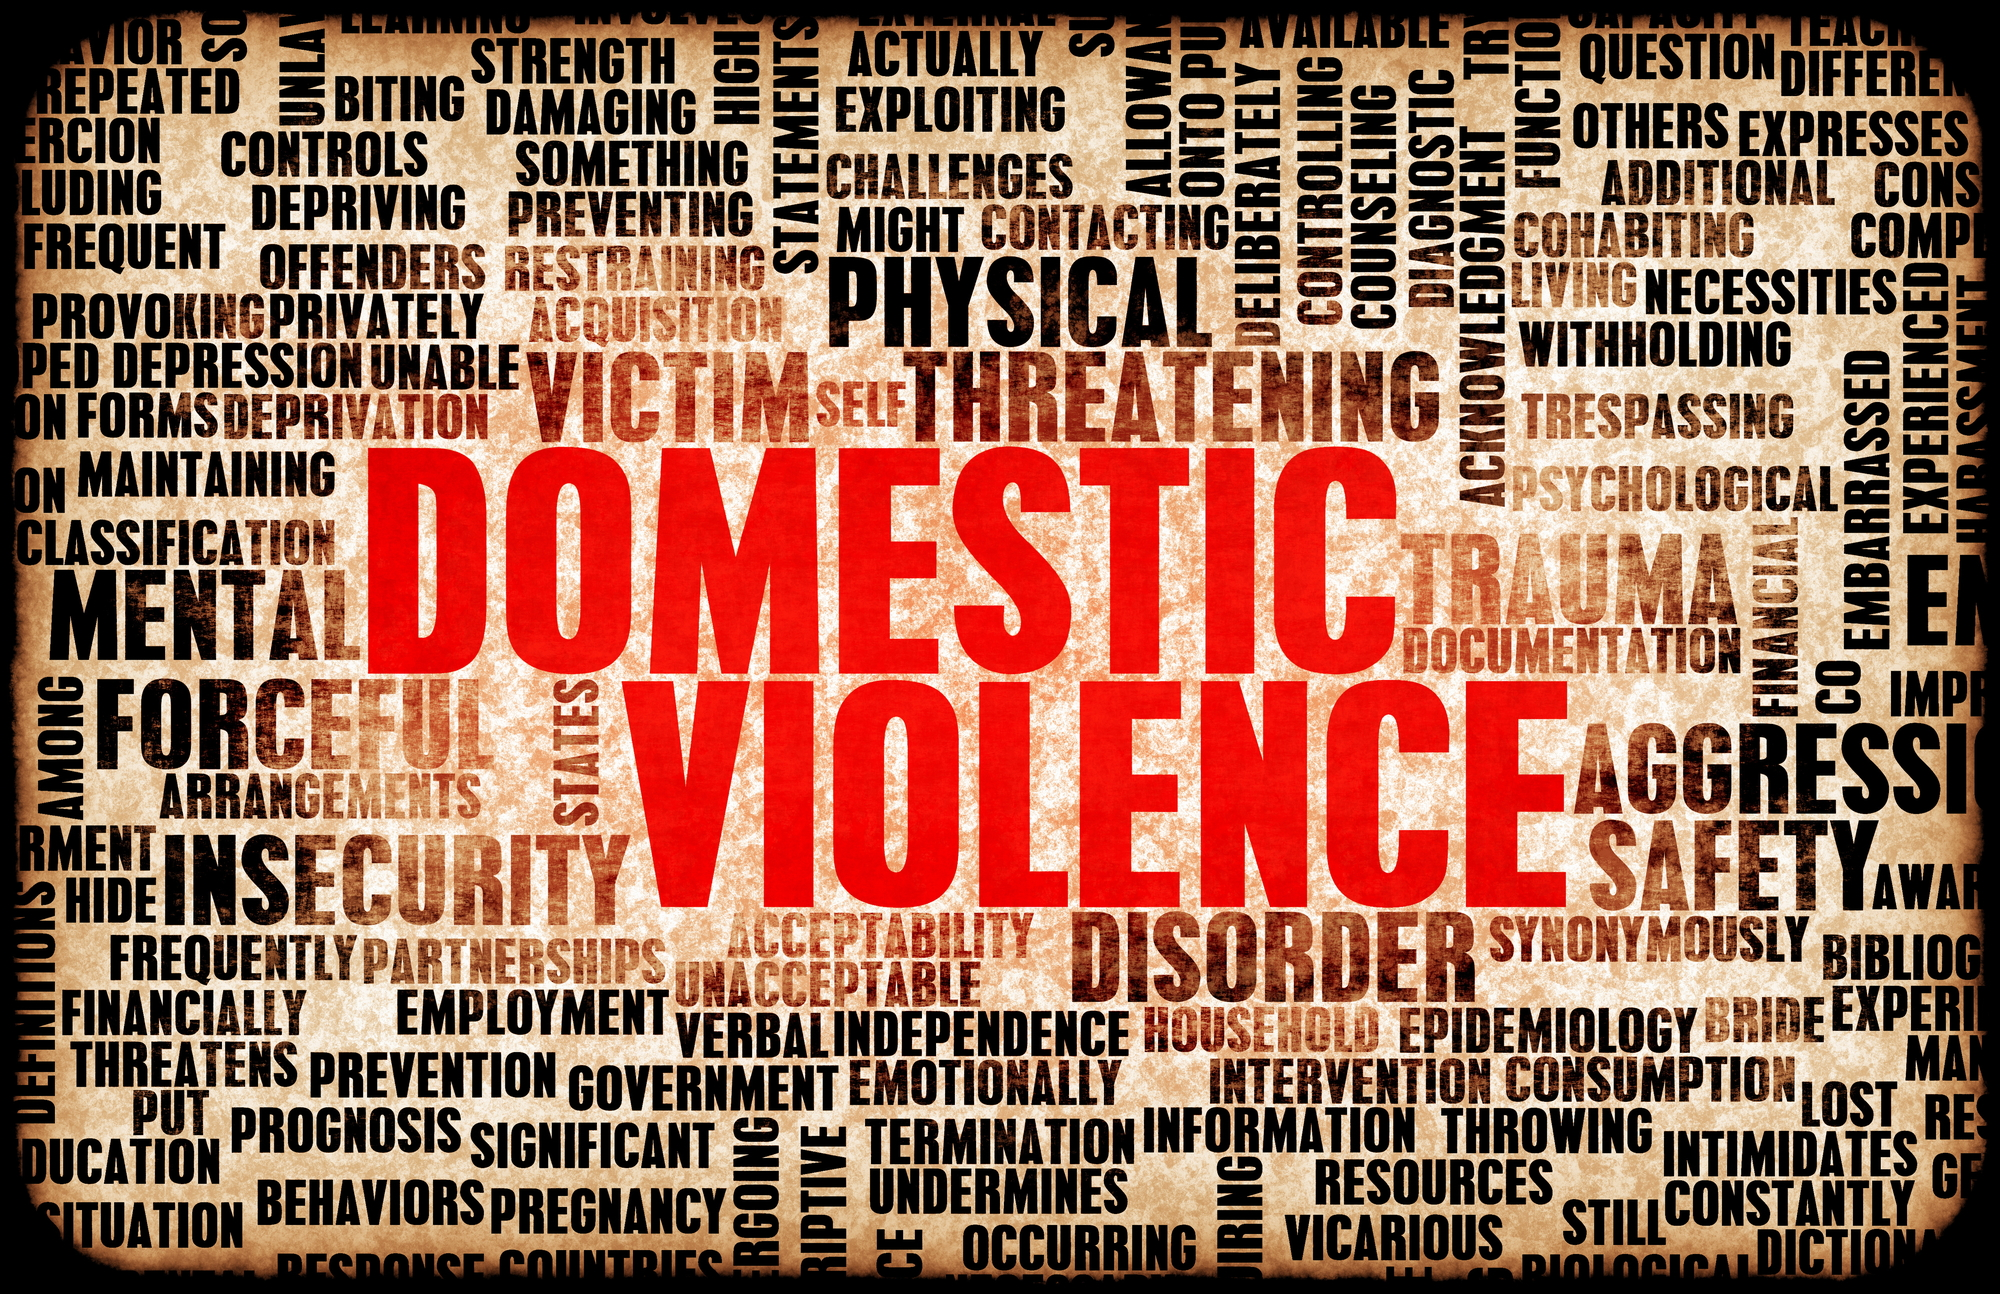 Threats or violence during a divorce what can you do to protect threats or violence during a divorce what can you do to protect yourself solutioingenieria Gallery